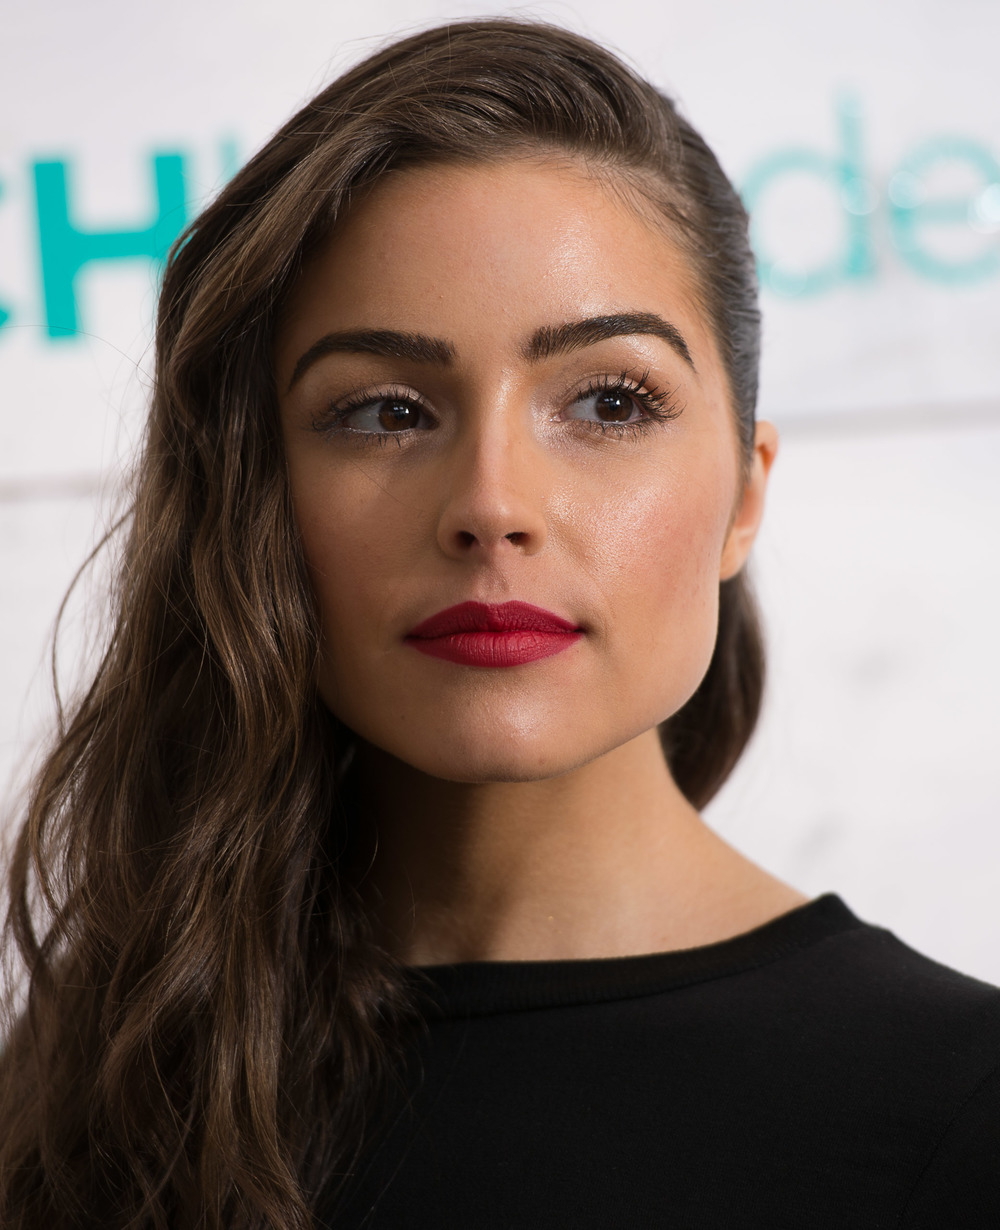 Miss Universe 2012 Olivia Culpo attends the John Frieda Hair Care Beach Blonde Collection Party at the Garage